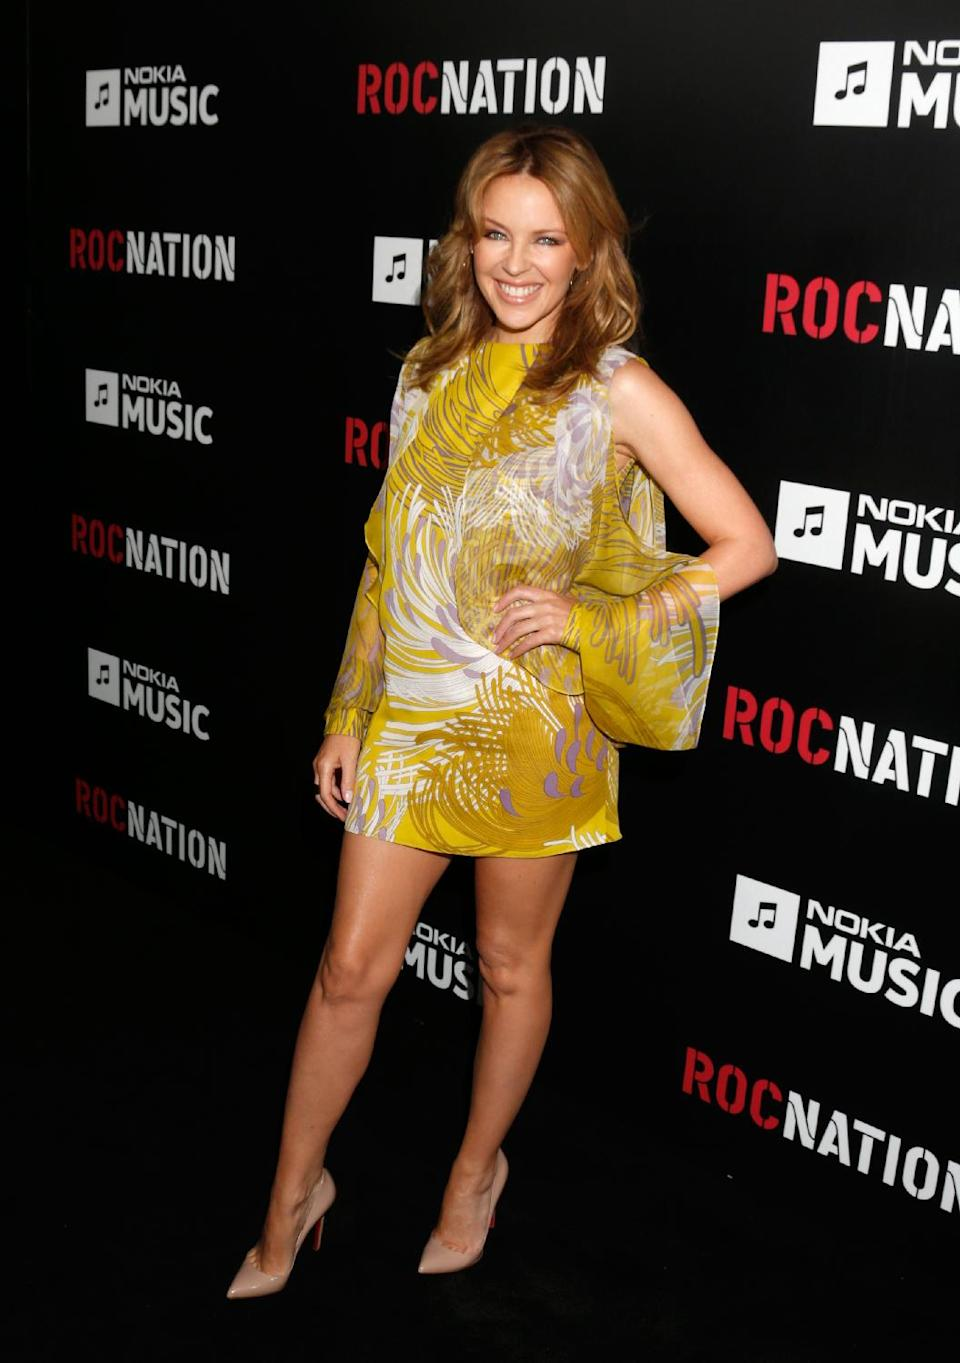 Kylie Minogue arrives at Roc Nation's Pre-Grammy Brunch at the Soho House on Saturday, Feb. 9, 2013 in Los Angeles. (Photo by Todd Williamson/Invision/AP)